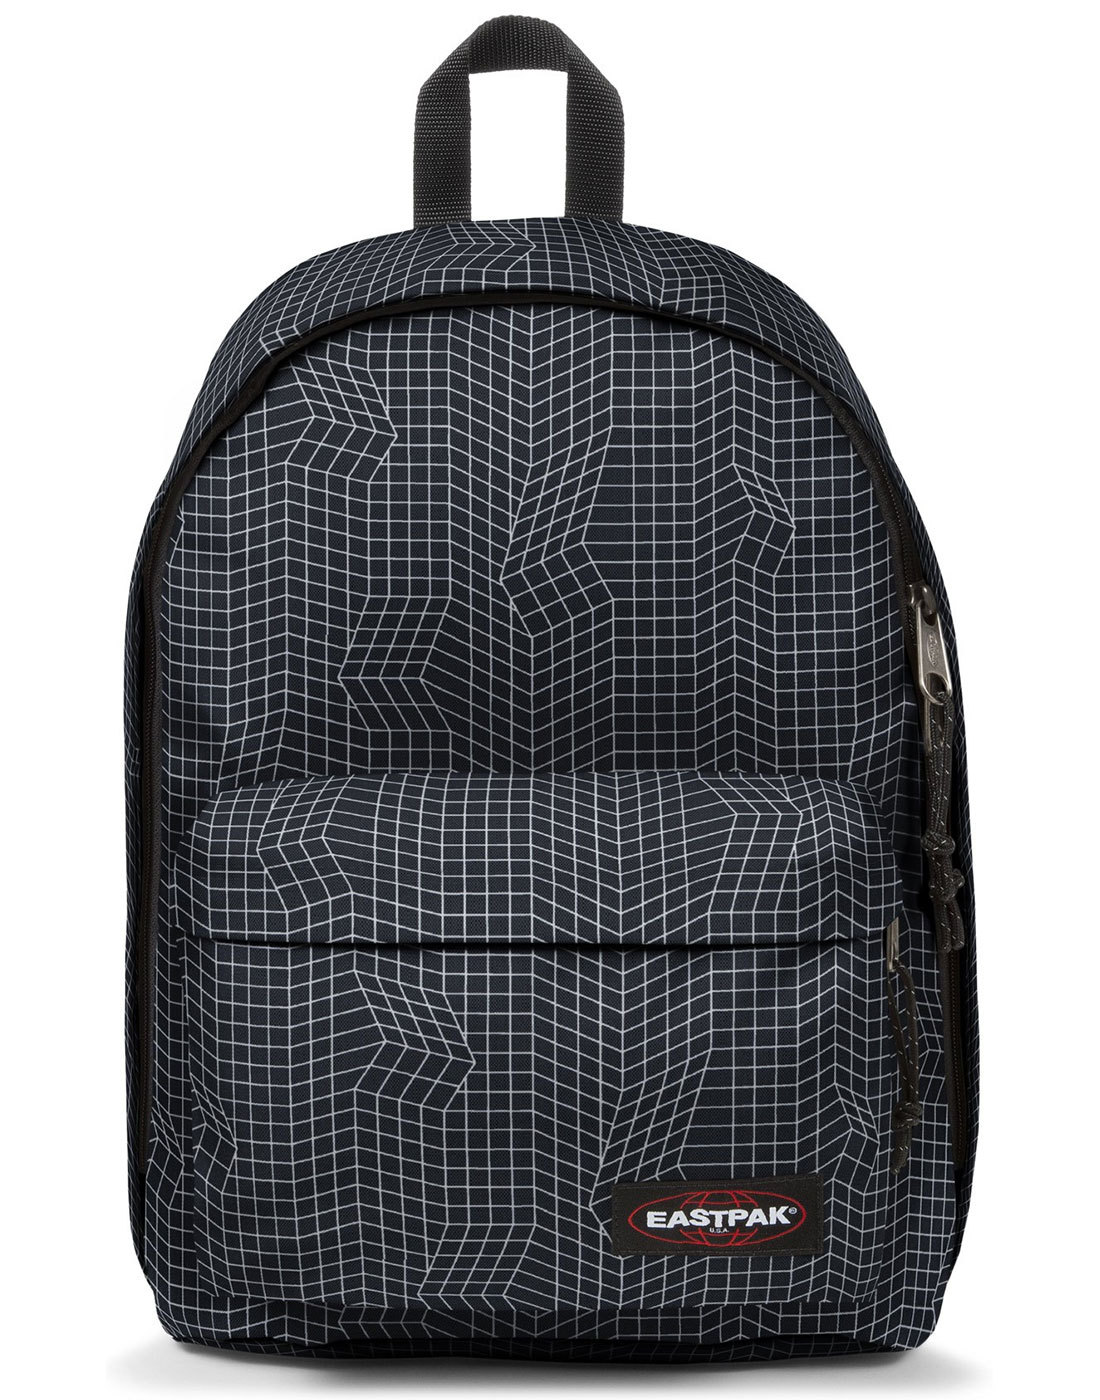 Out Of Office EASTPAK Black Dance Laptop Backpack